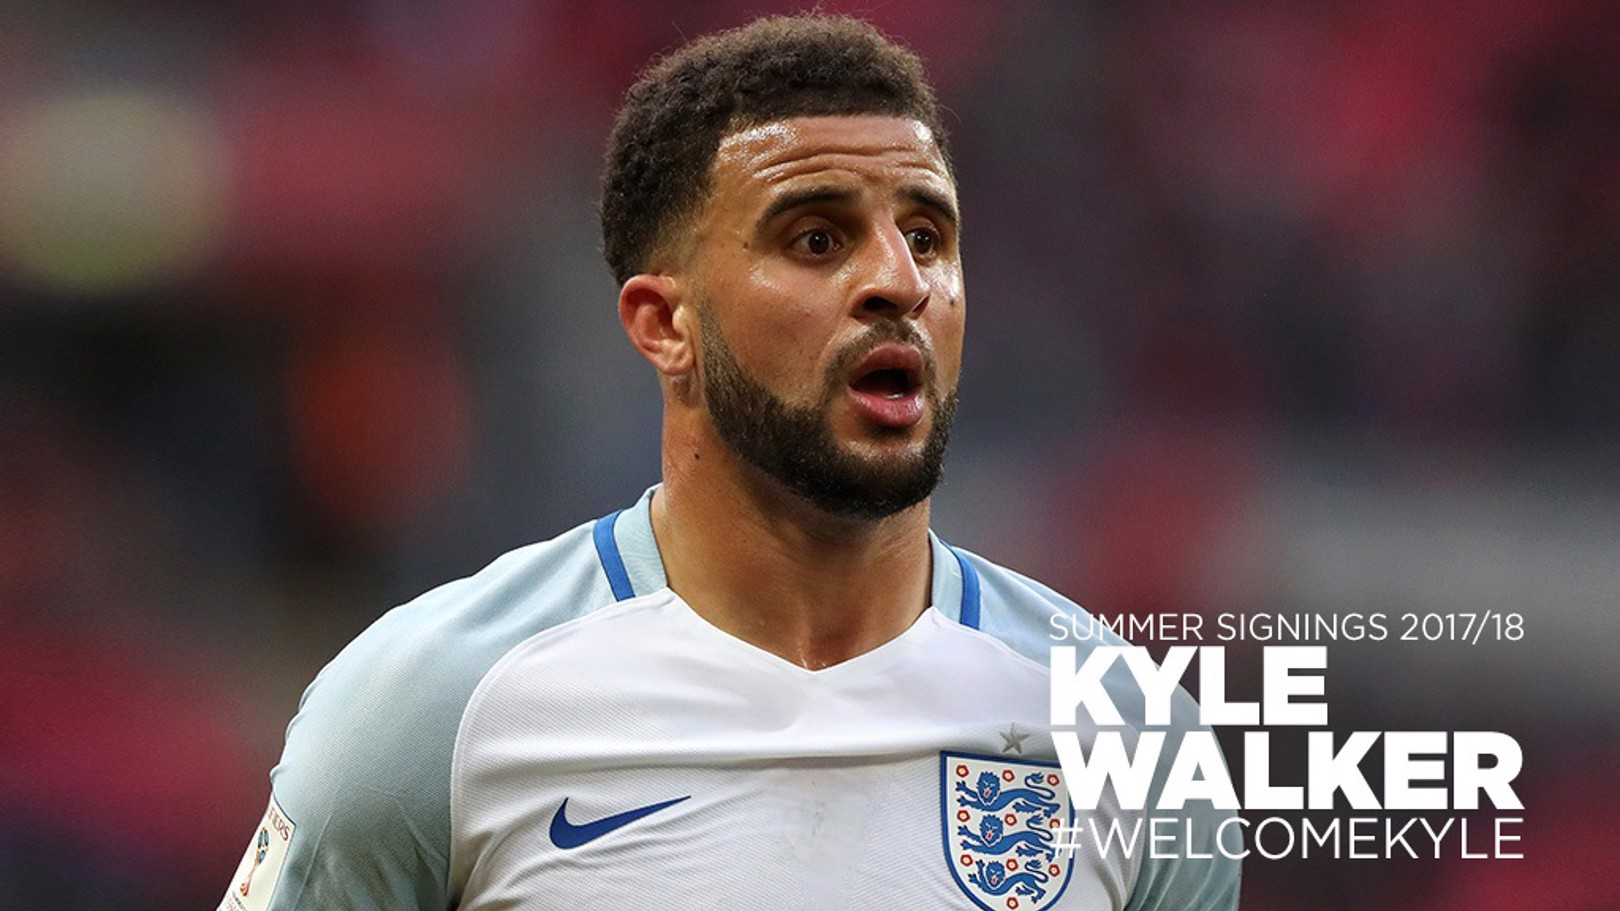 Kyle Walker: 10 choses à savoir